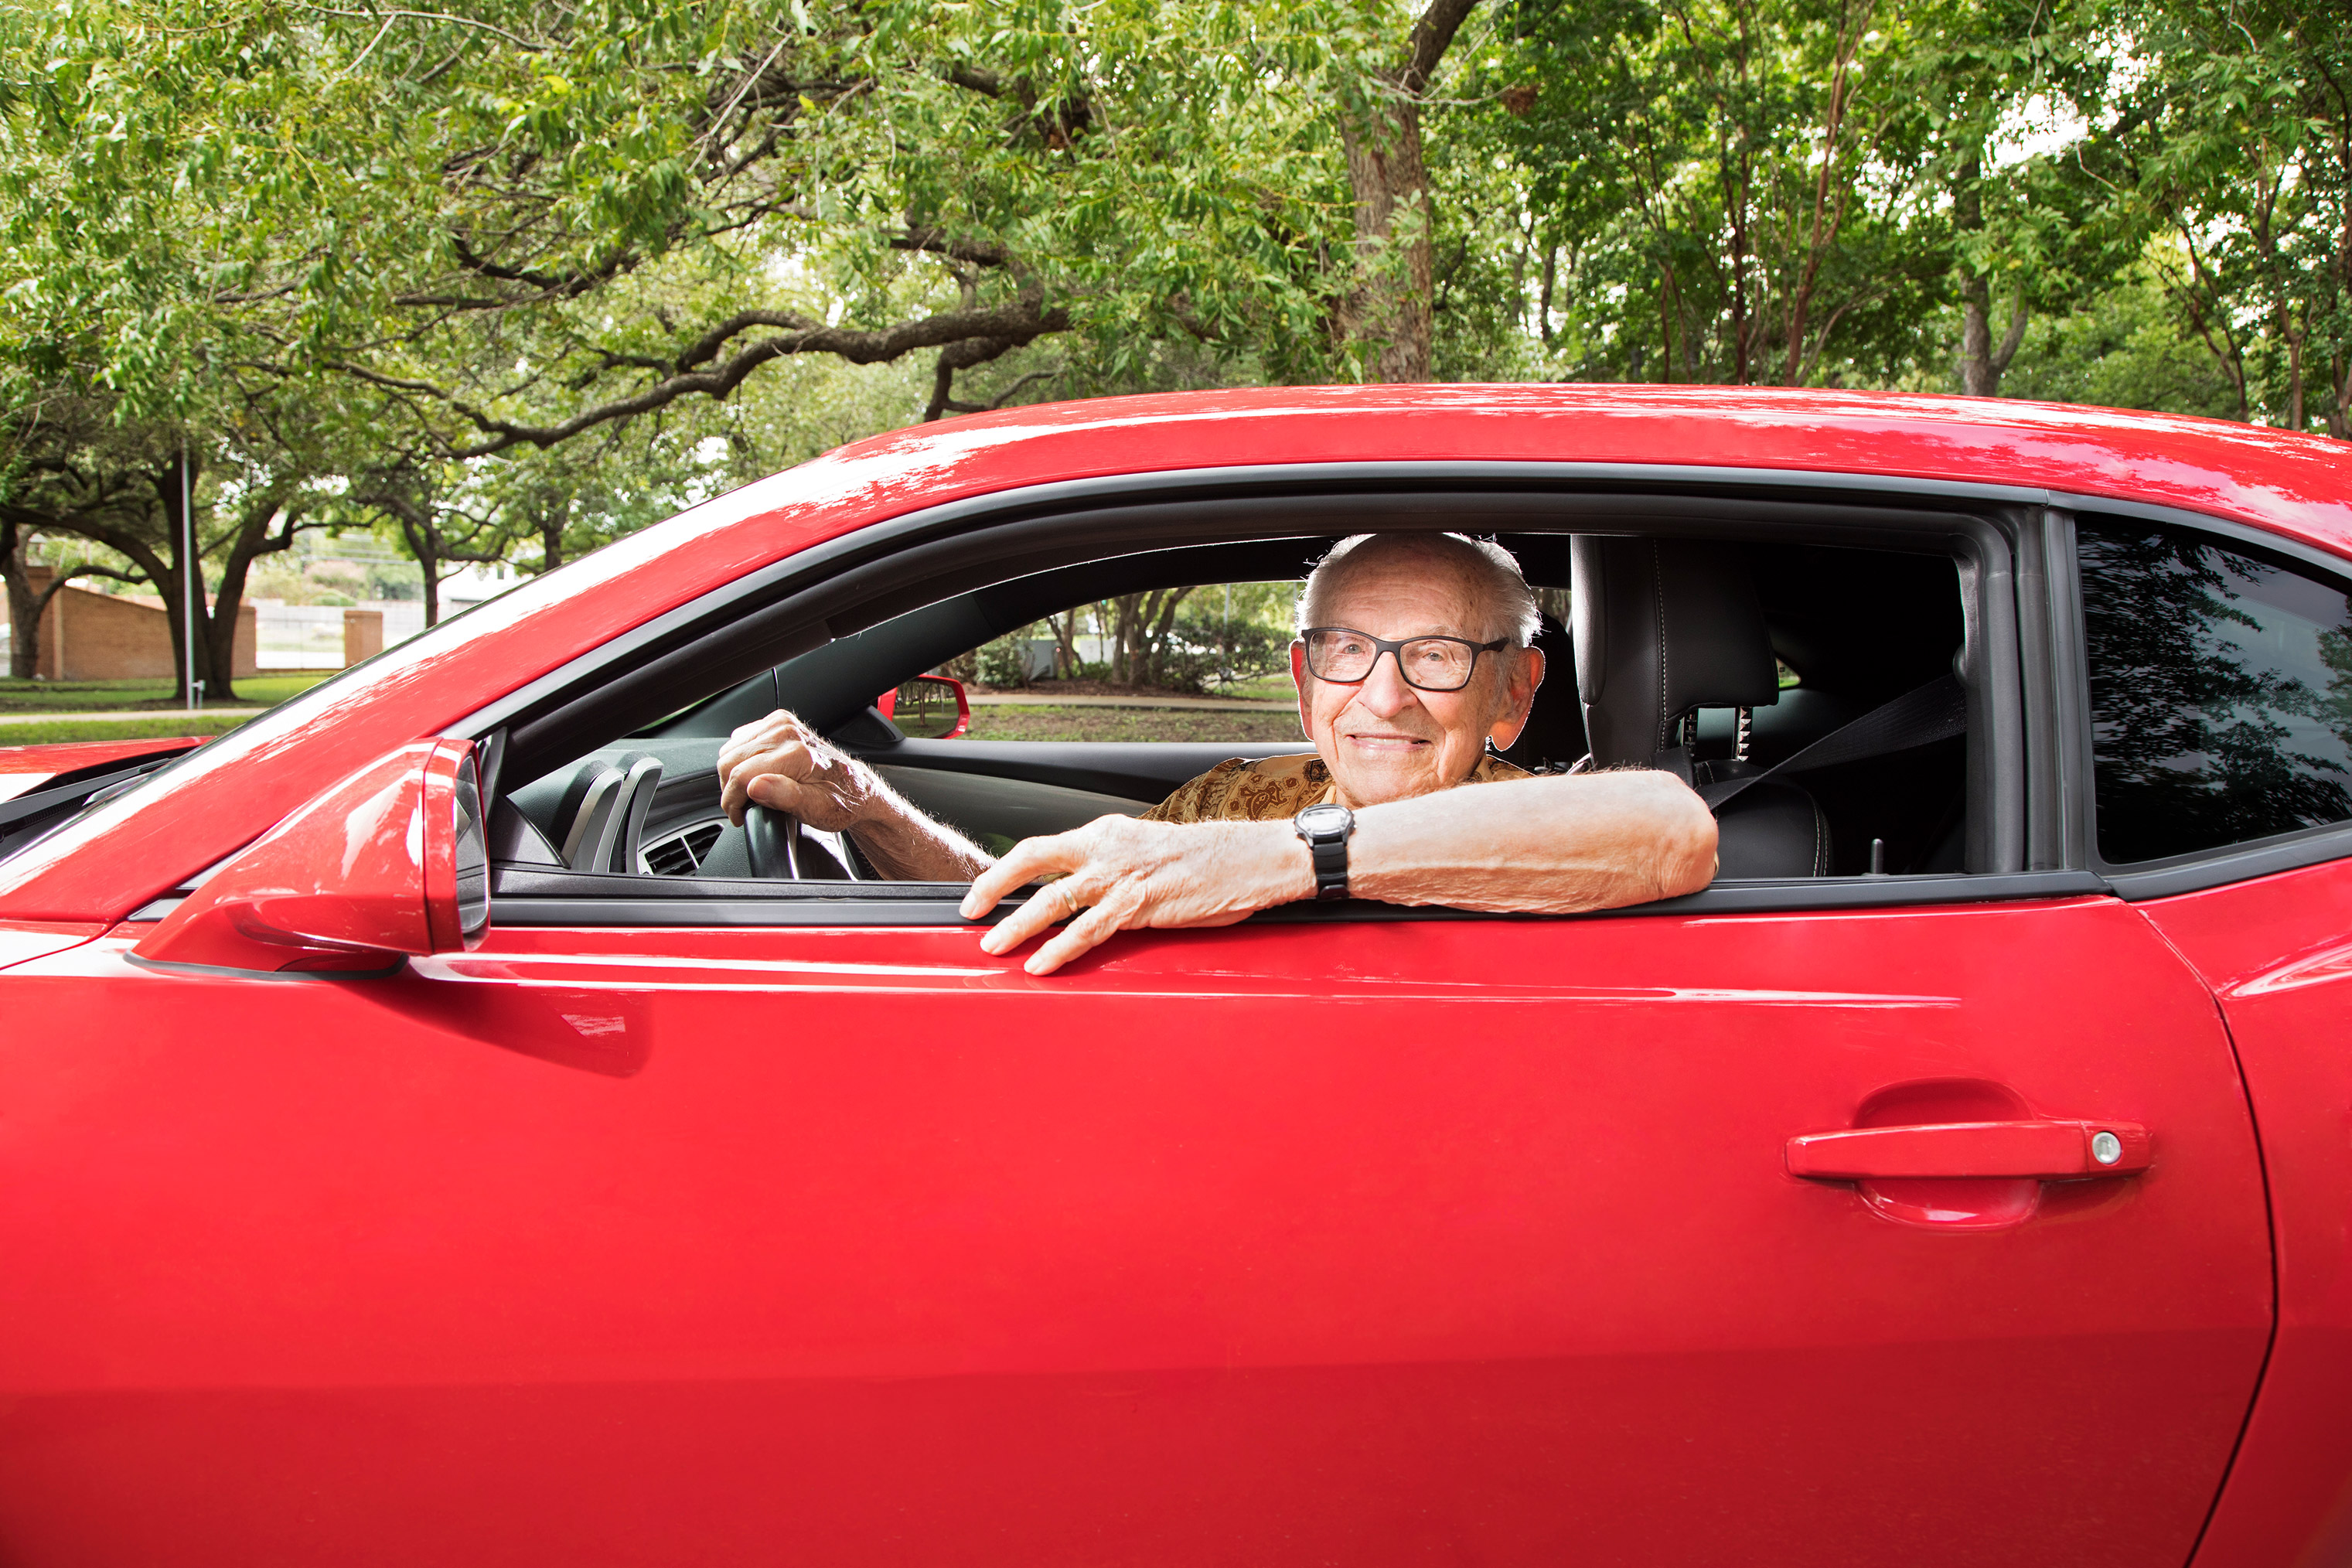 Orville Rogers, age 100, in his cherished 2013 Chevy Camaro, is still cruising after 40 years of retirement.